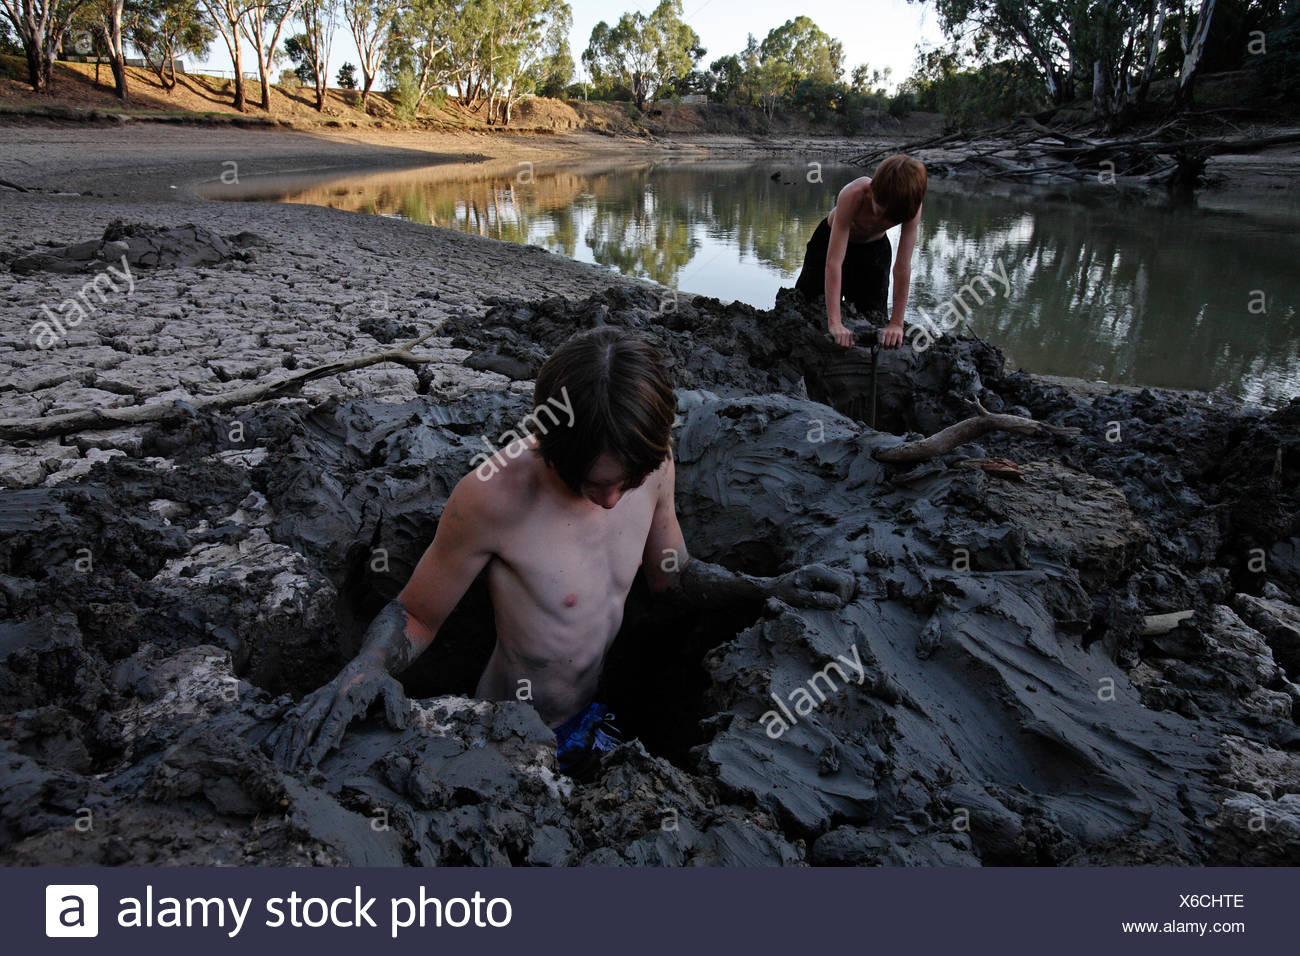 Boys dig holes in the banks of the Murrumbidgee River. - Stock Image